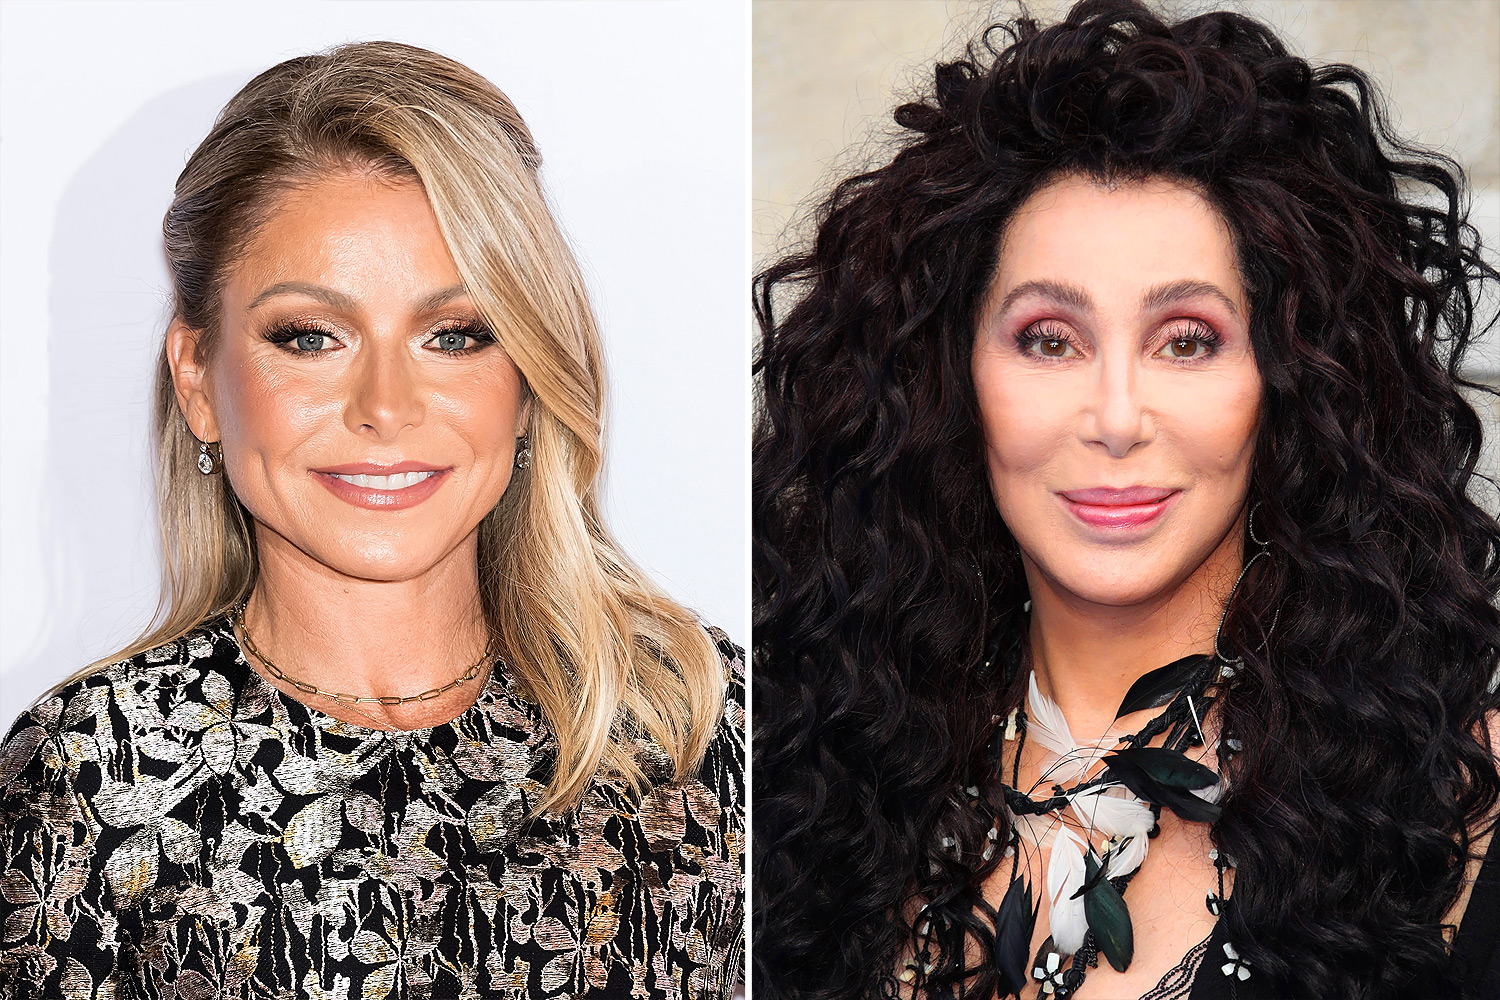 Kelly Ripa and Cher